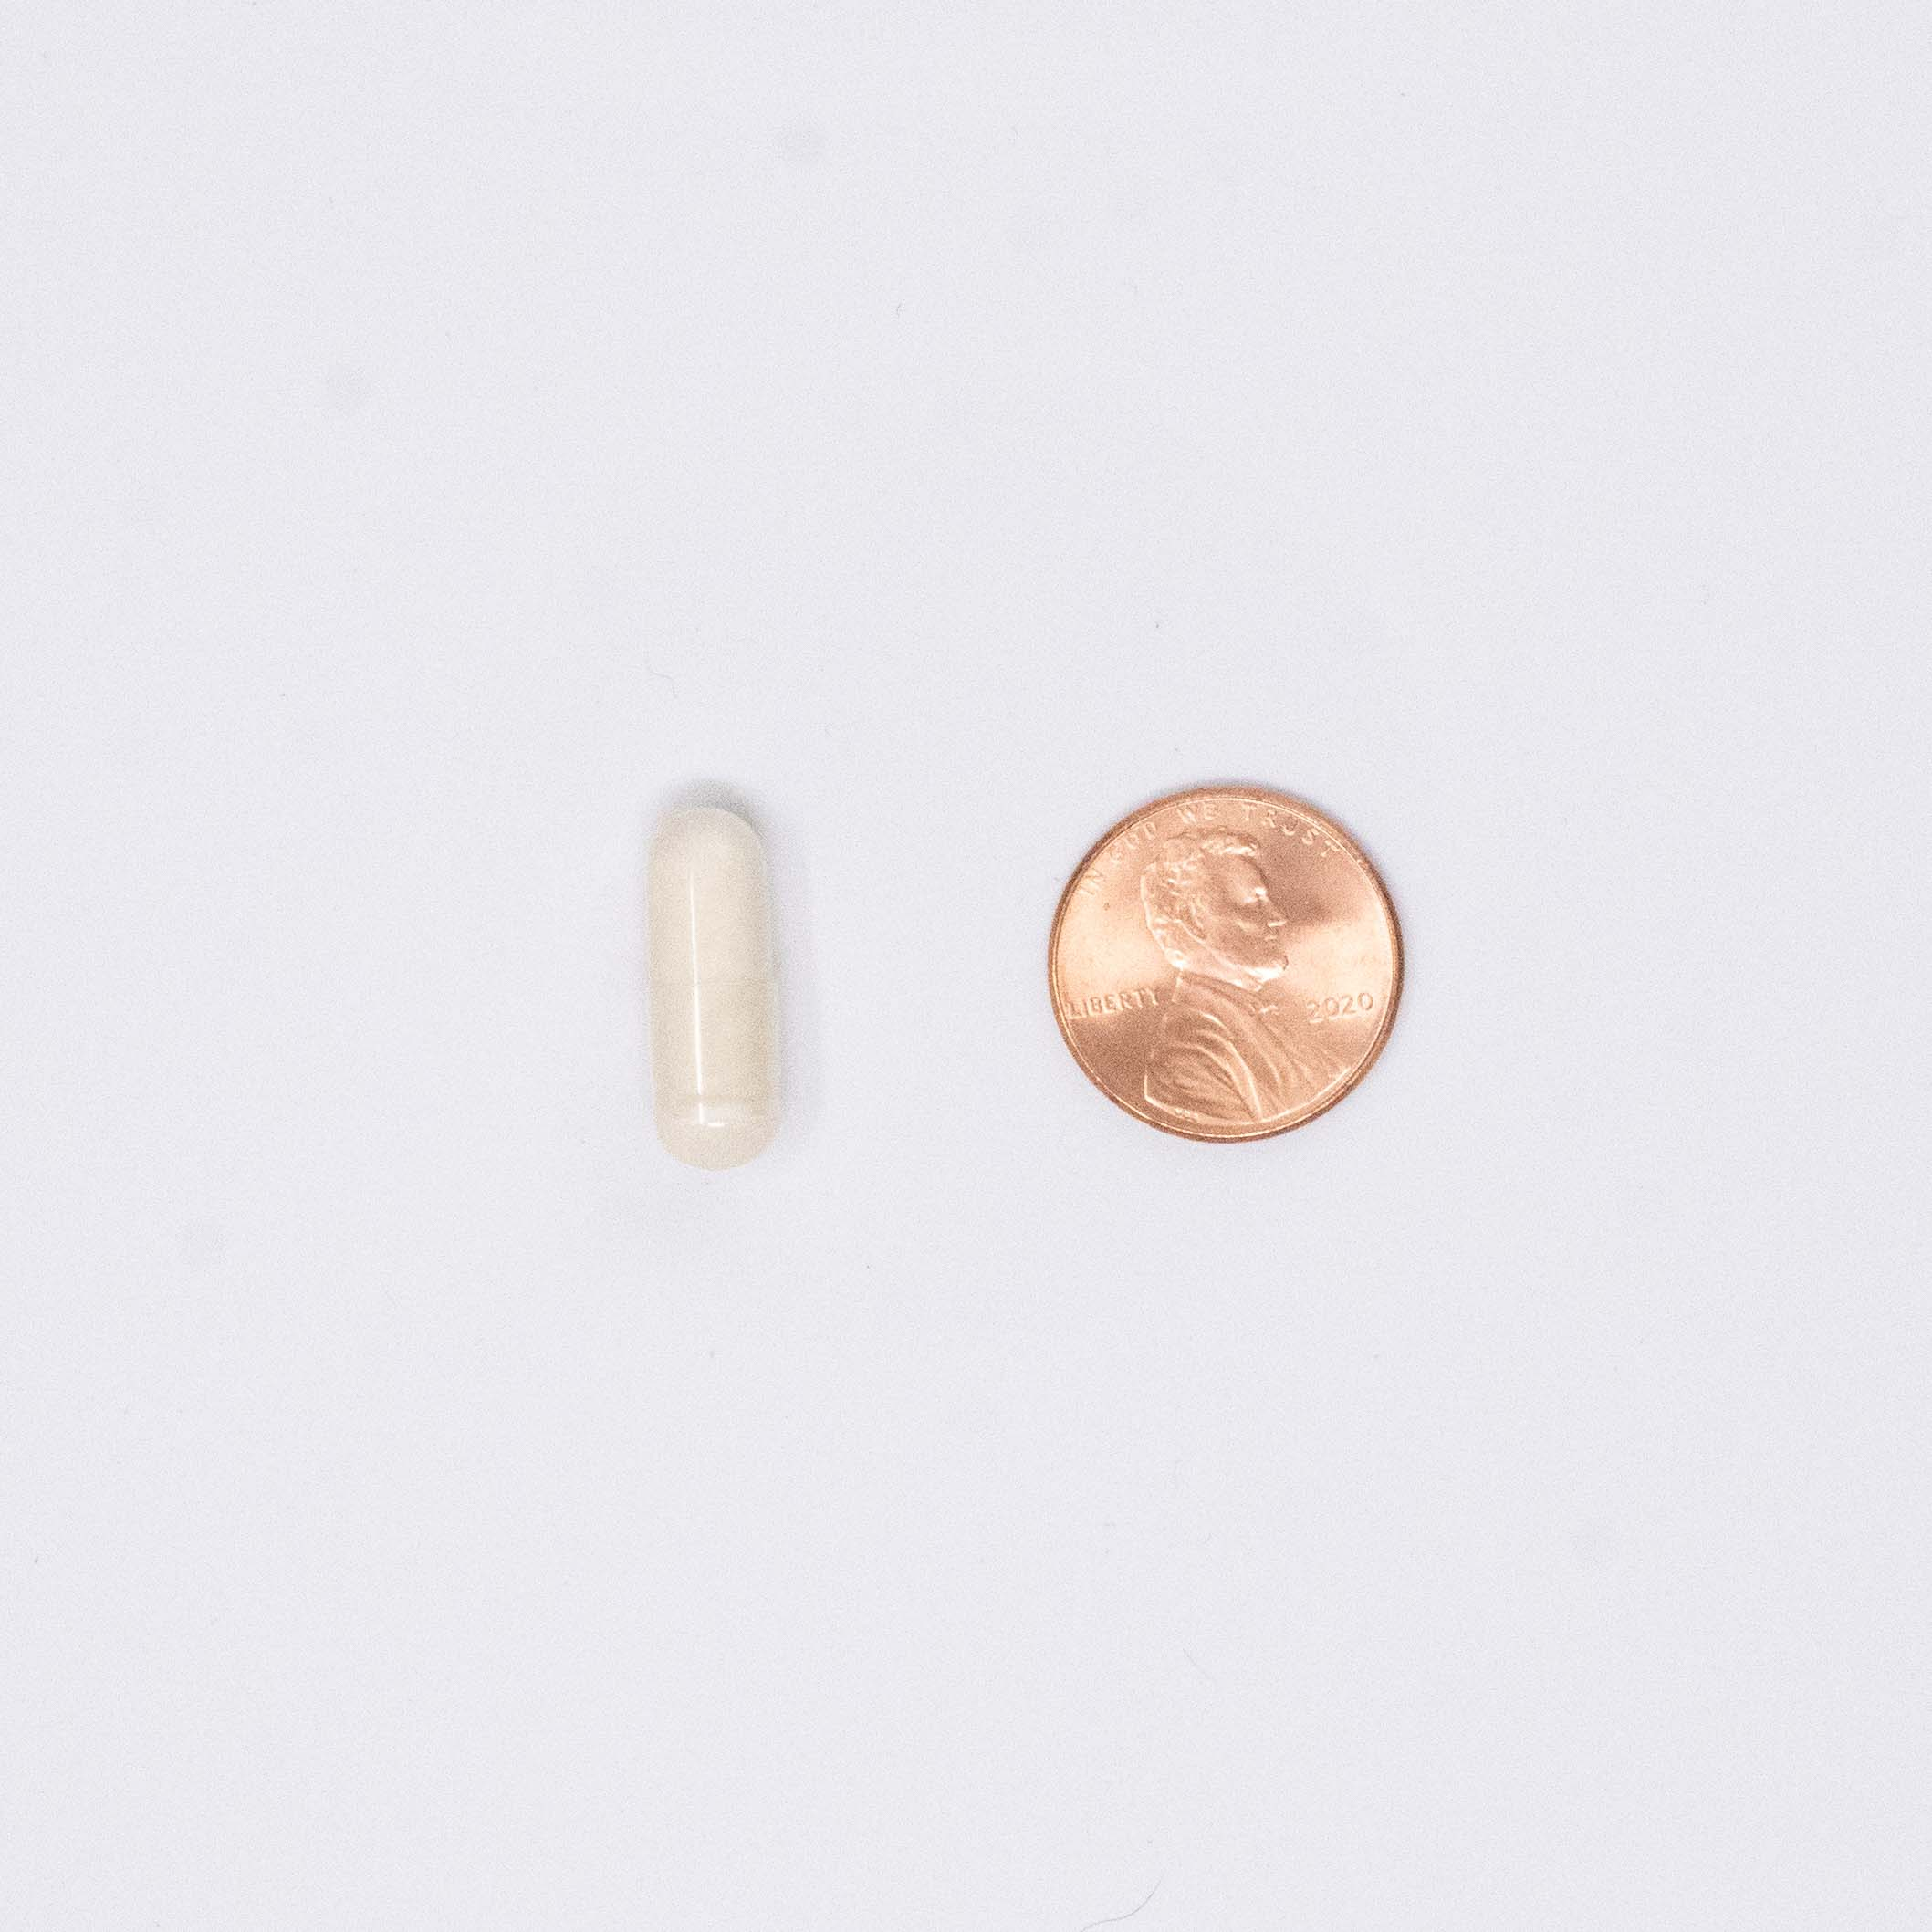 Vitamin D pill compared size to a penny